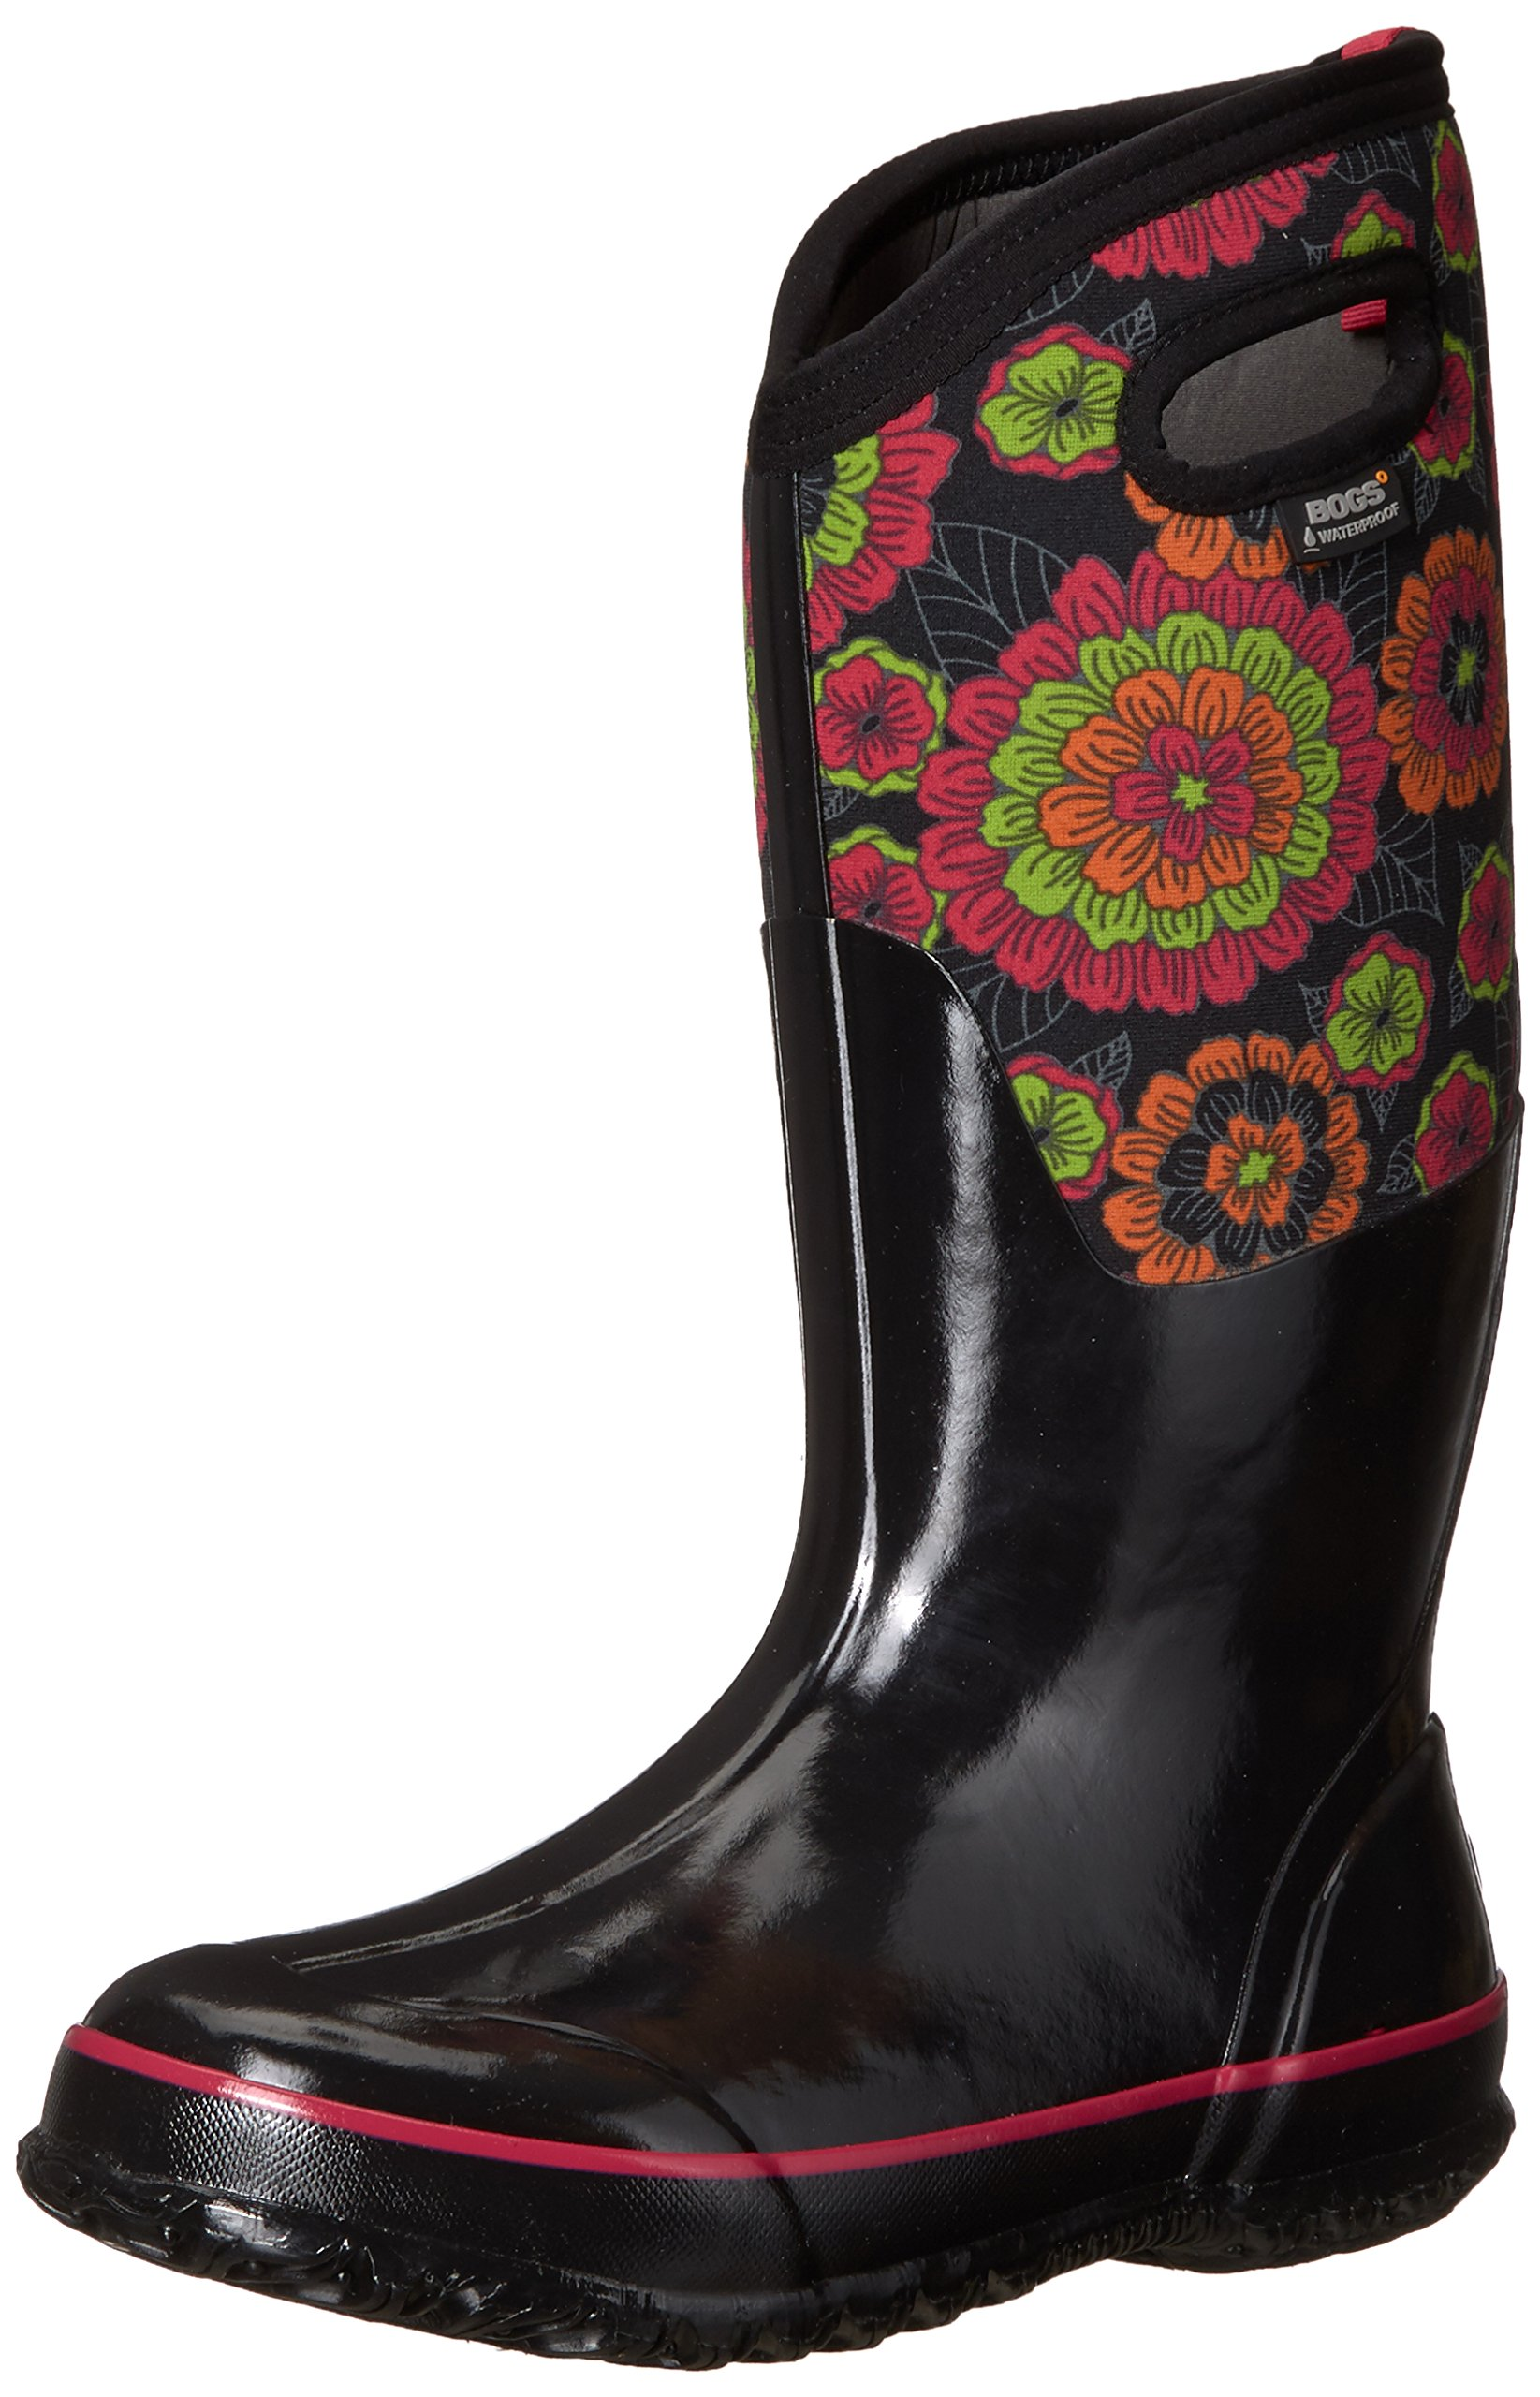 Bogs Women's Classic Pansies Snow Boot, Black/Multi, 9 M US